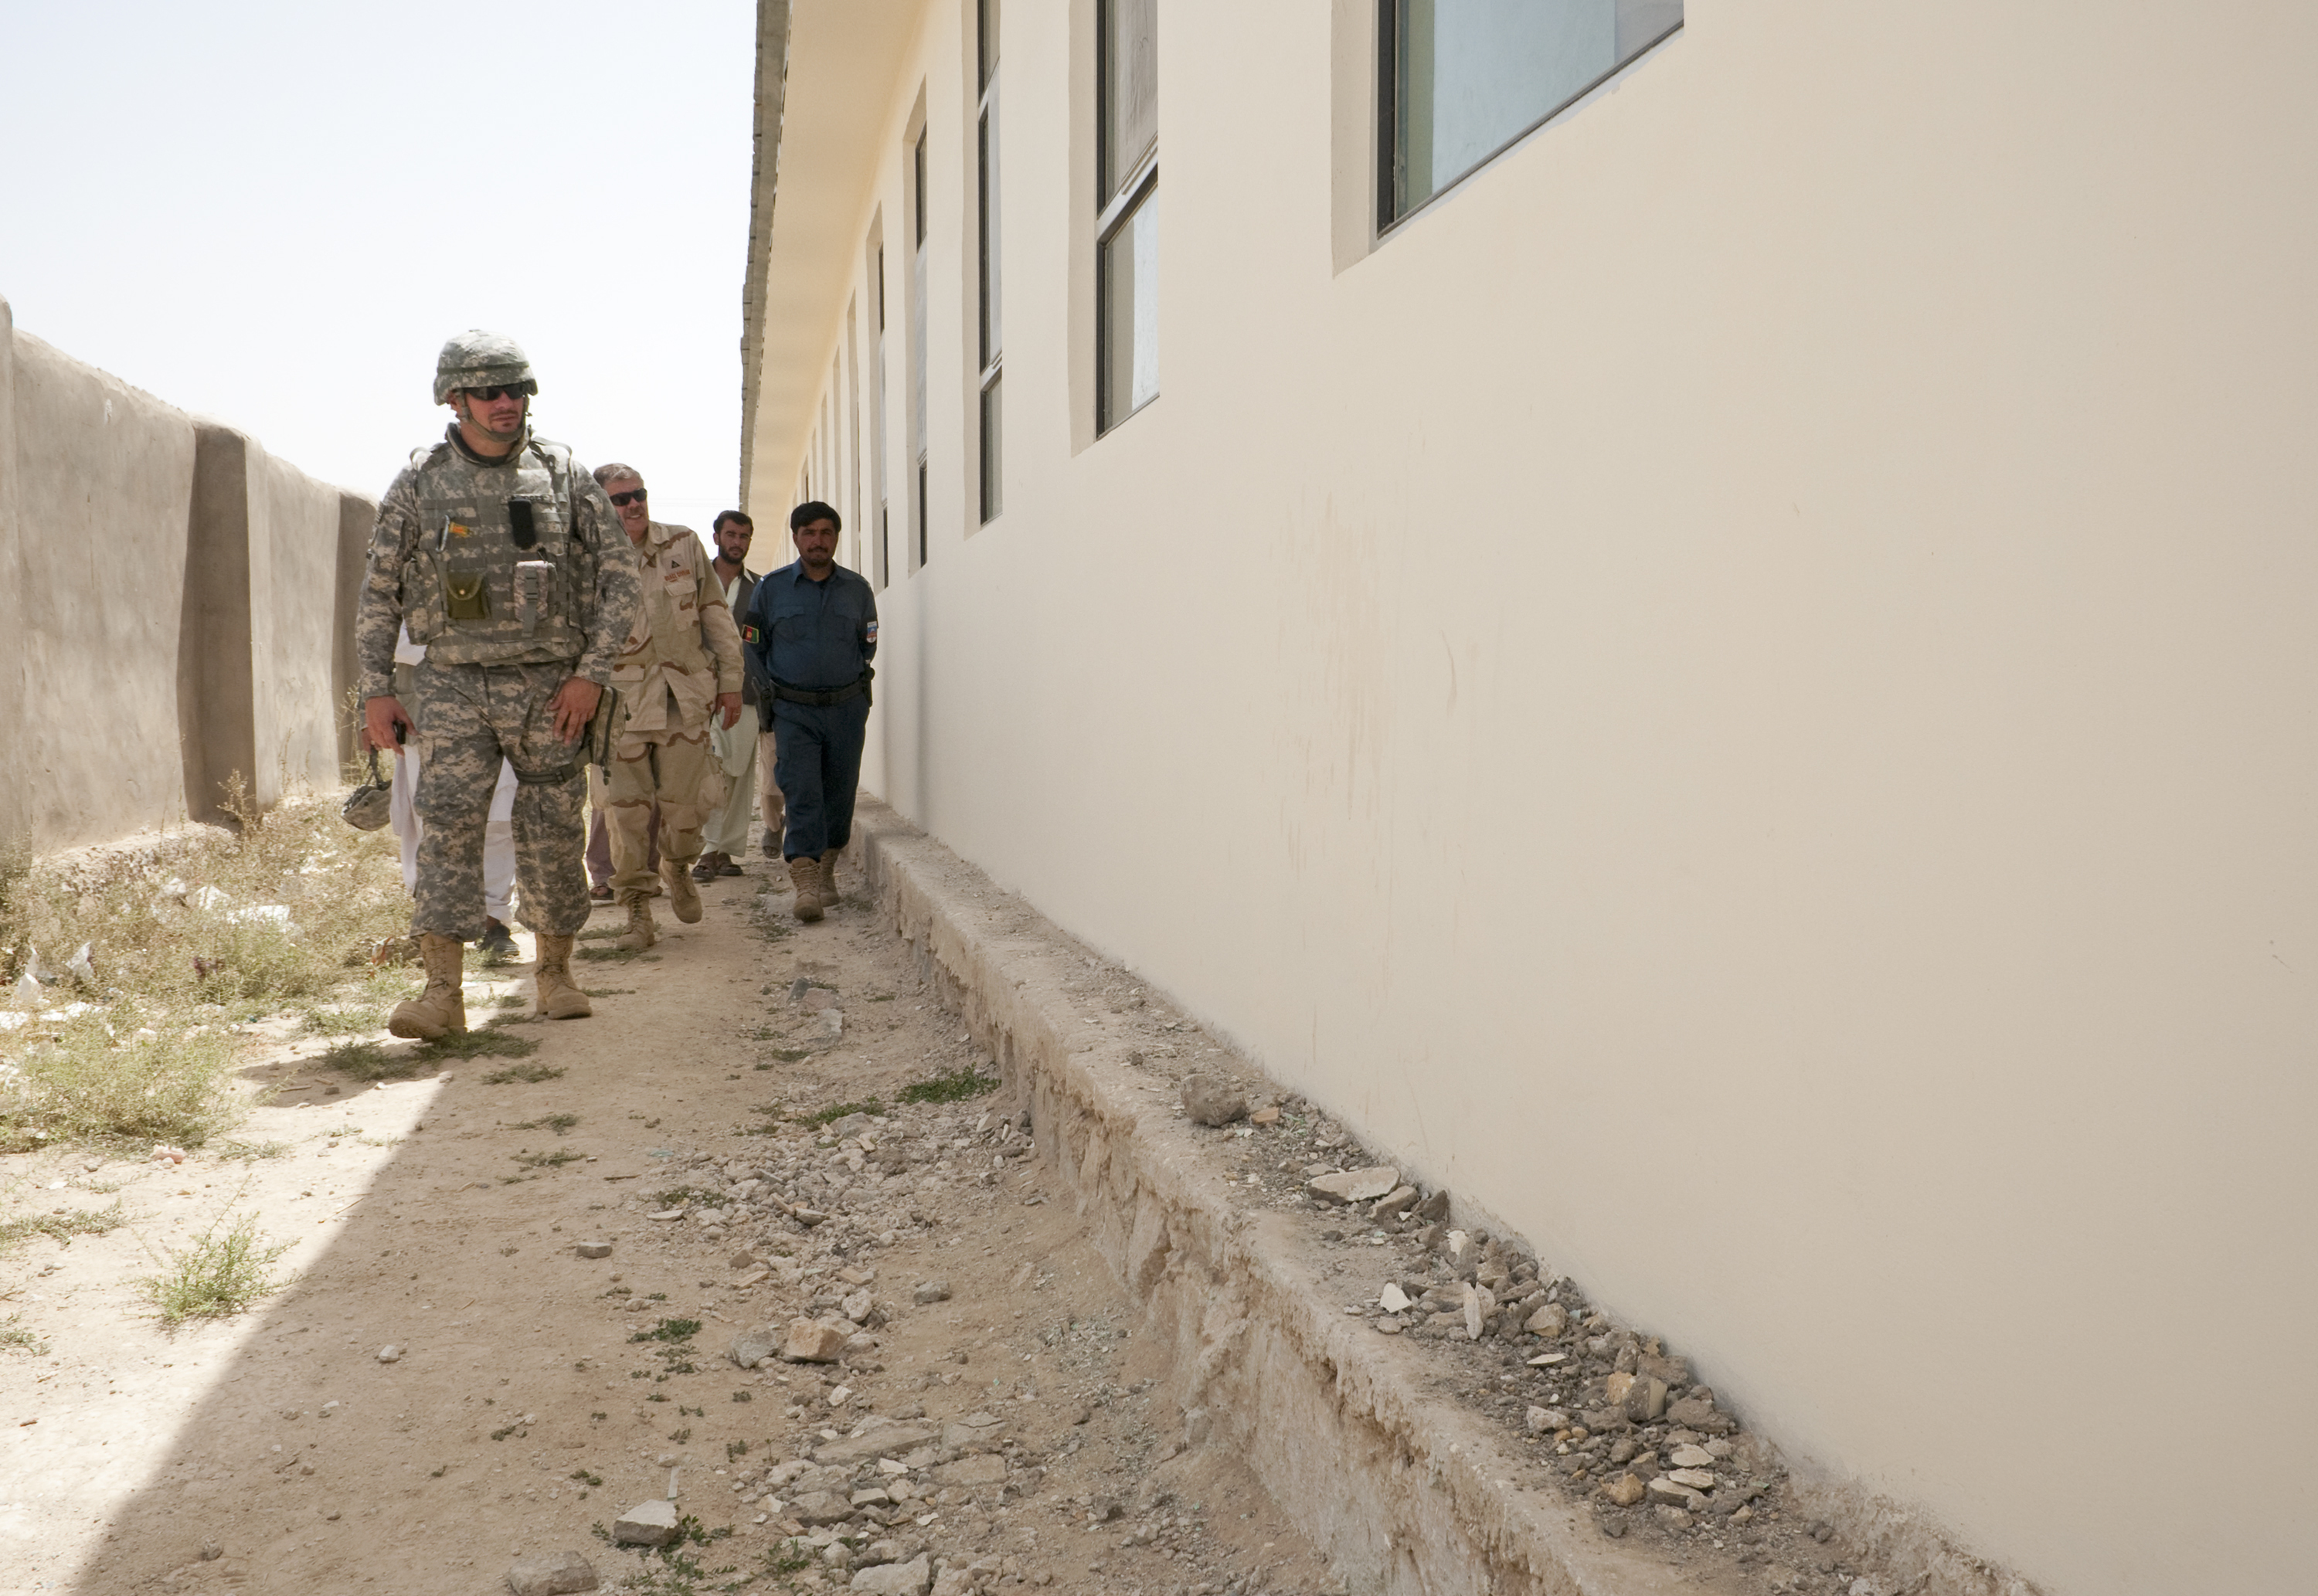 Zabul province, July 9, 2010. The school recently received a $135,000 renovation, which included foundation work, installation of new windows and doors